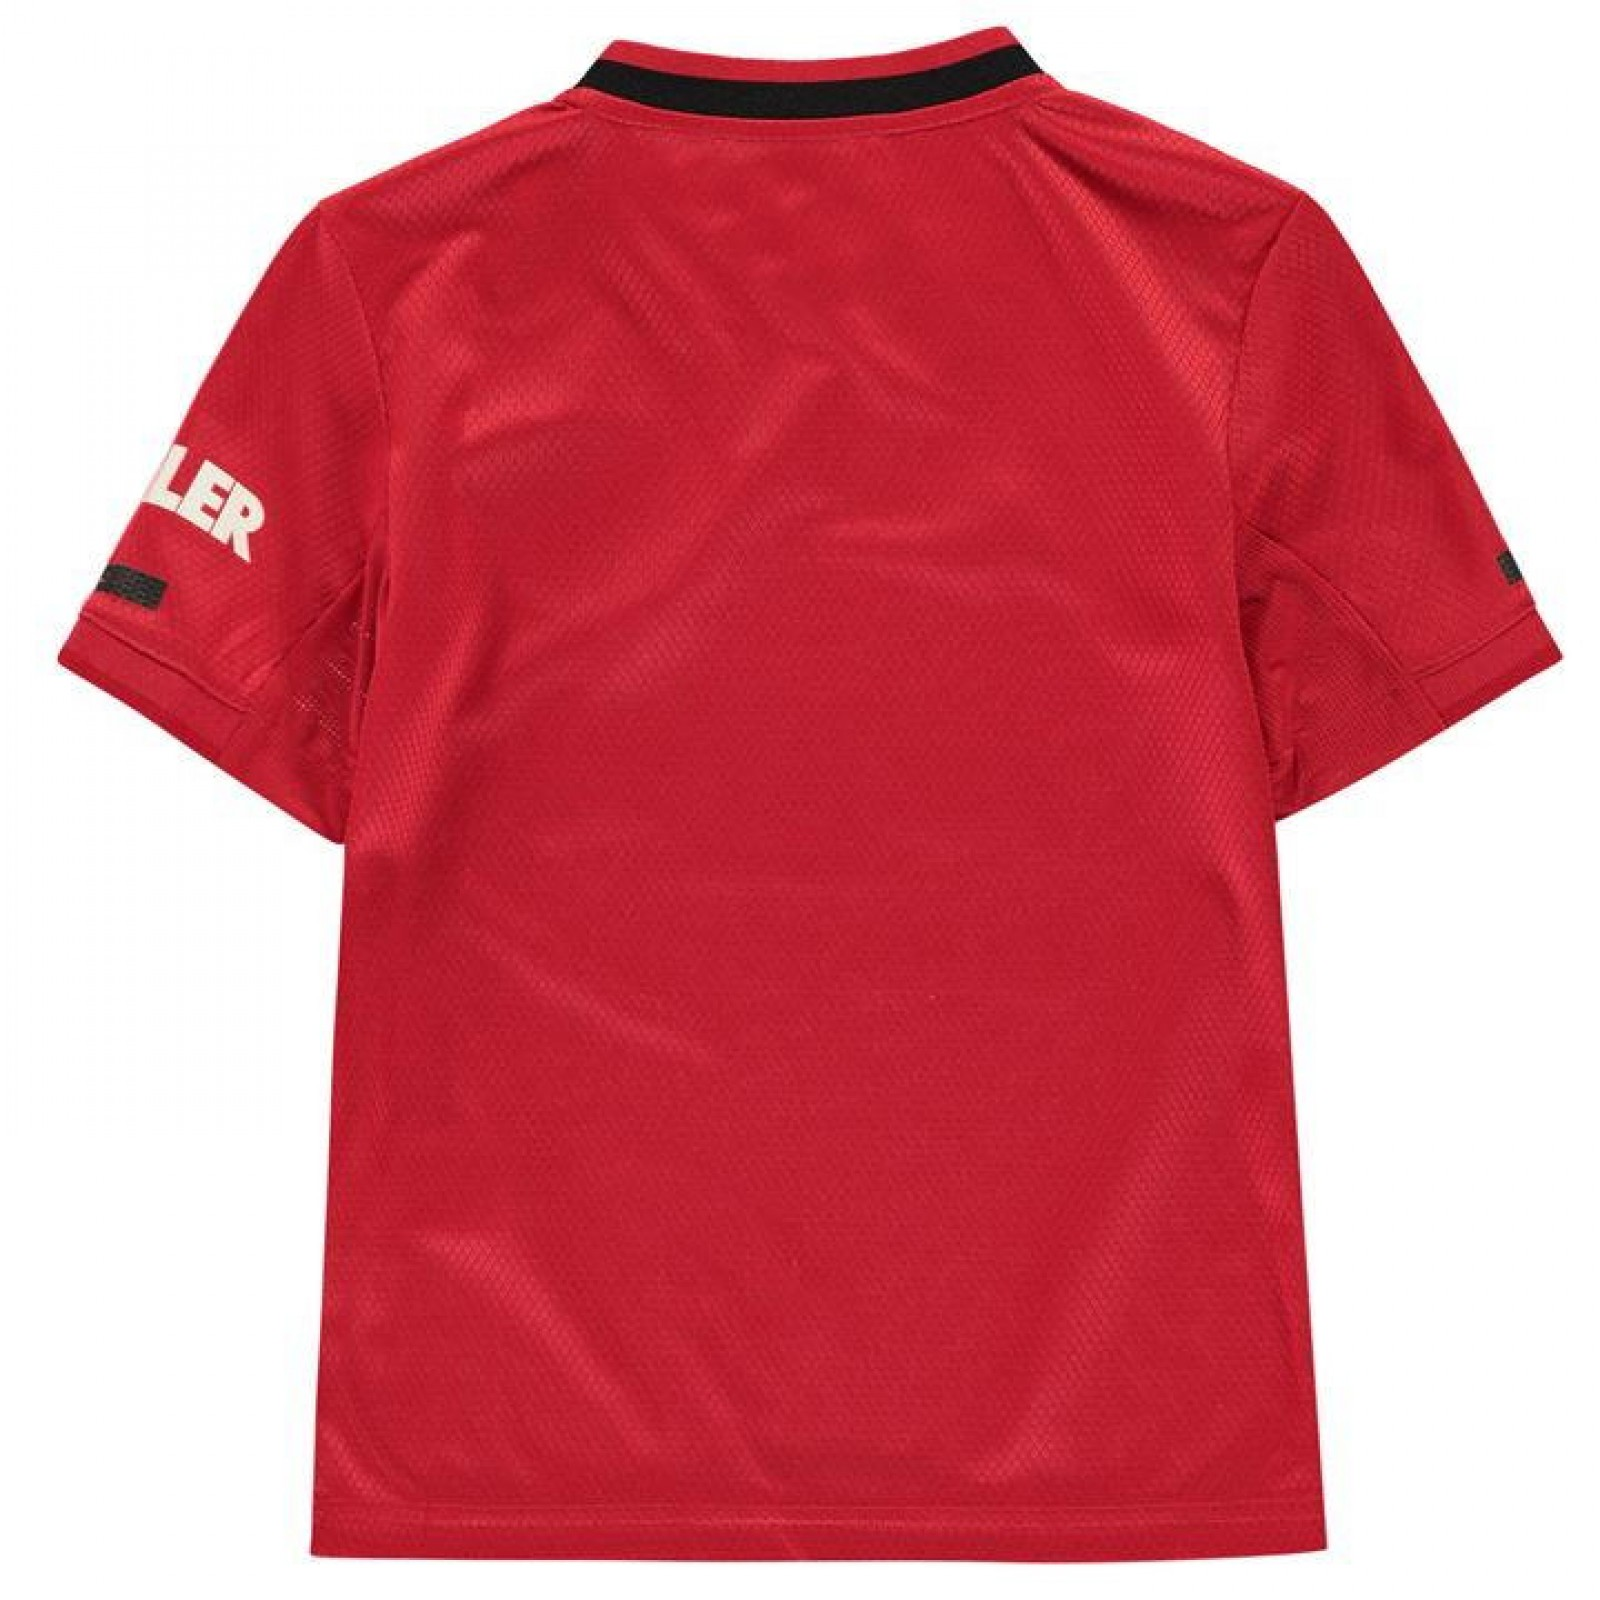 Childrens Manchester United Home 2019 20 Kit Free Shirt Printing Available At Totalsports